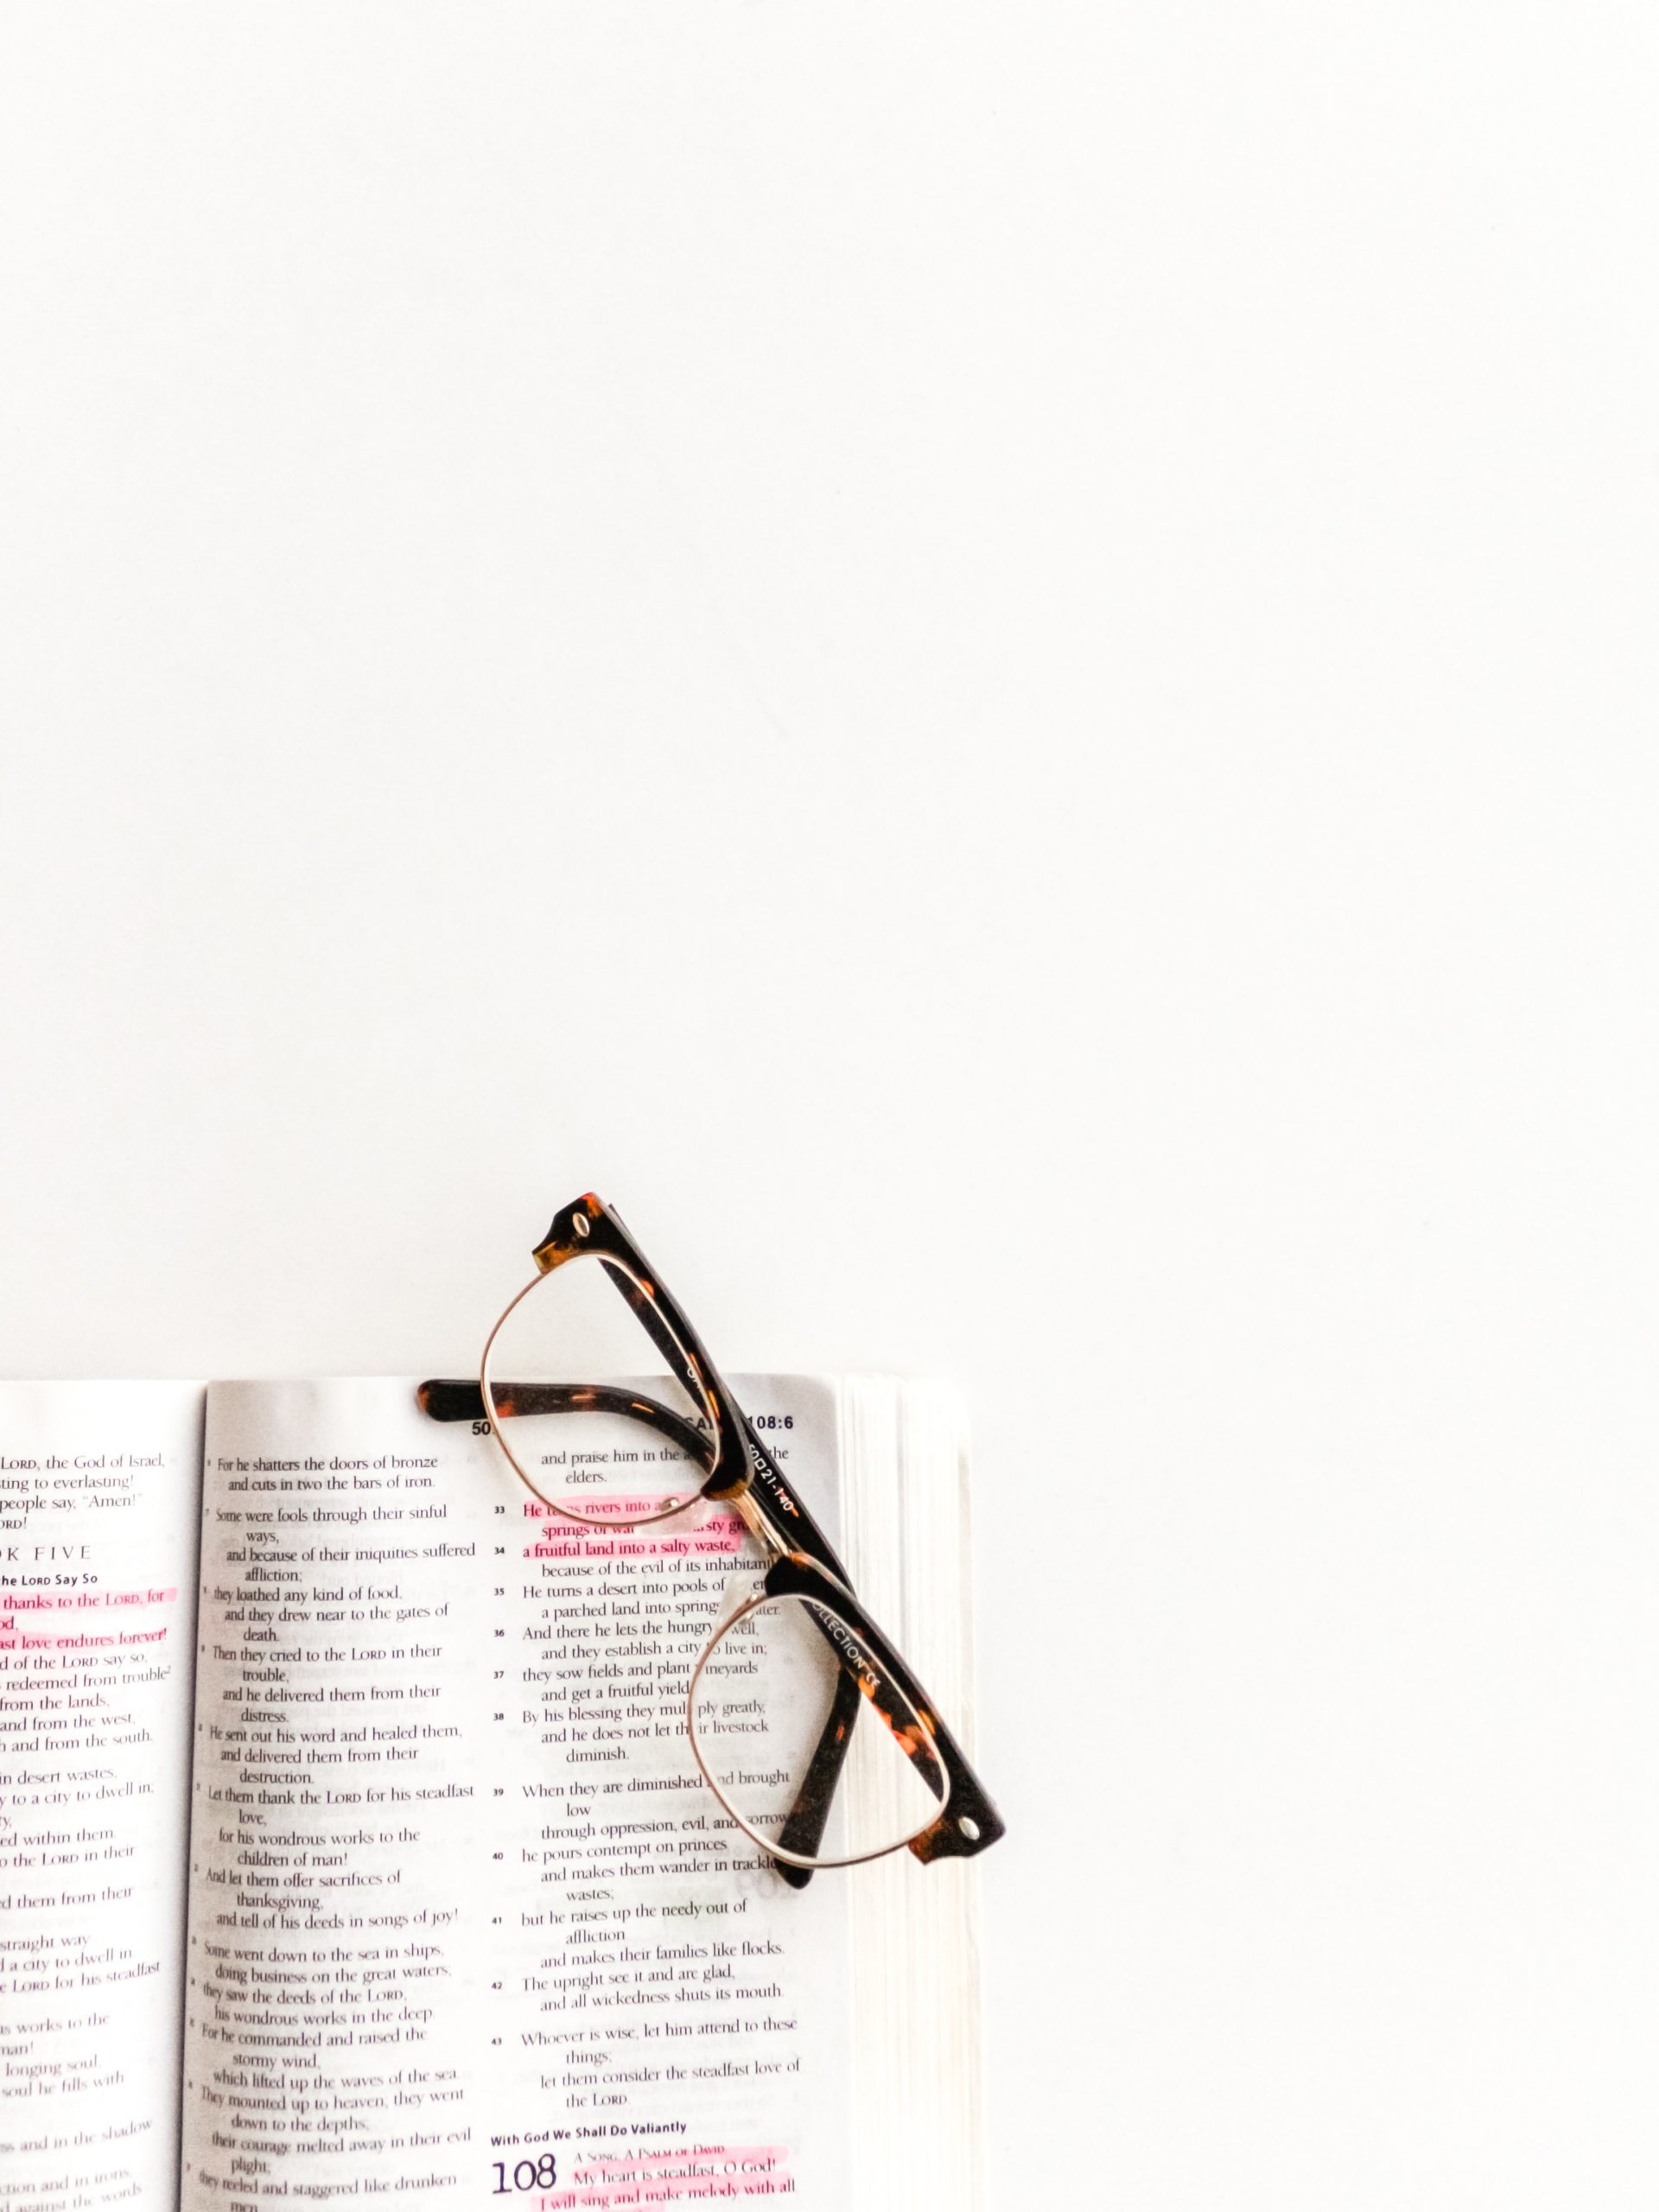 Evaluating, Sharp Eyes, Soft Hearts, and Sanctified Minds: Evaluating Christian Books, Servants of Grace, Servants of Grace